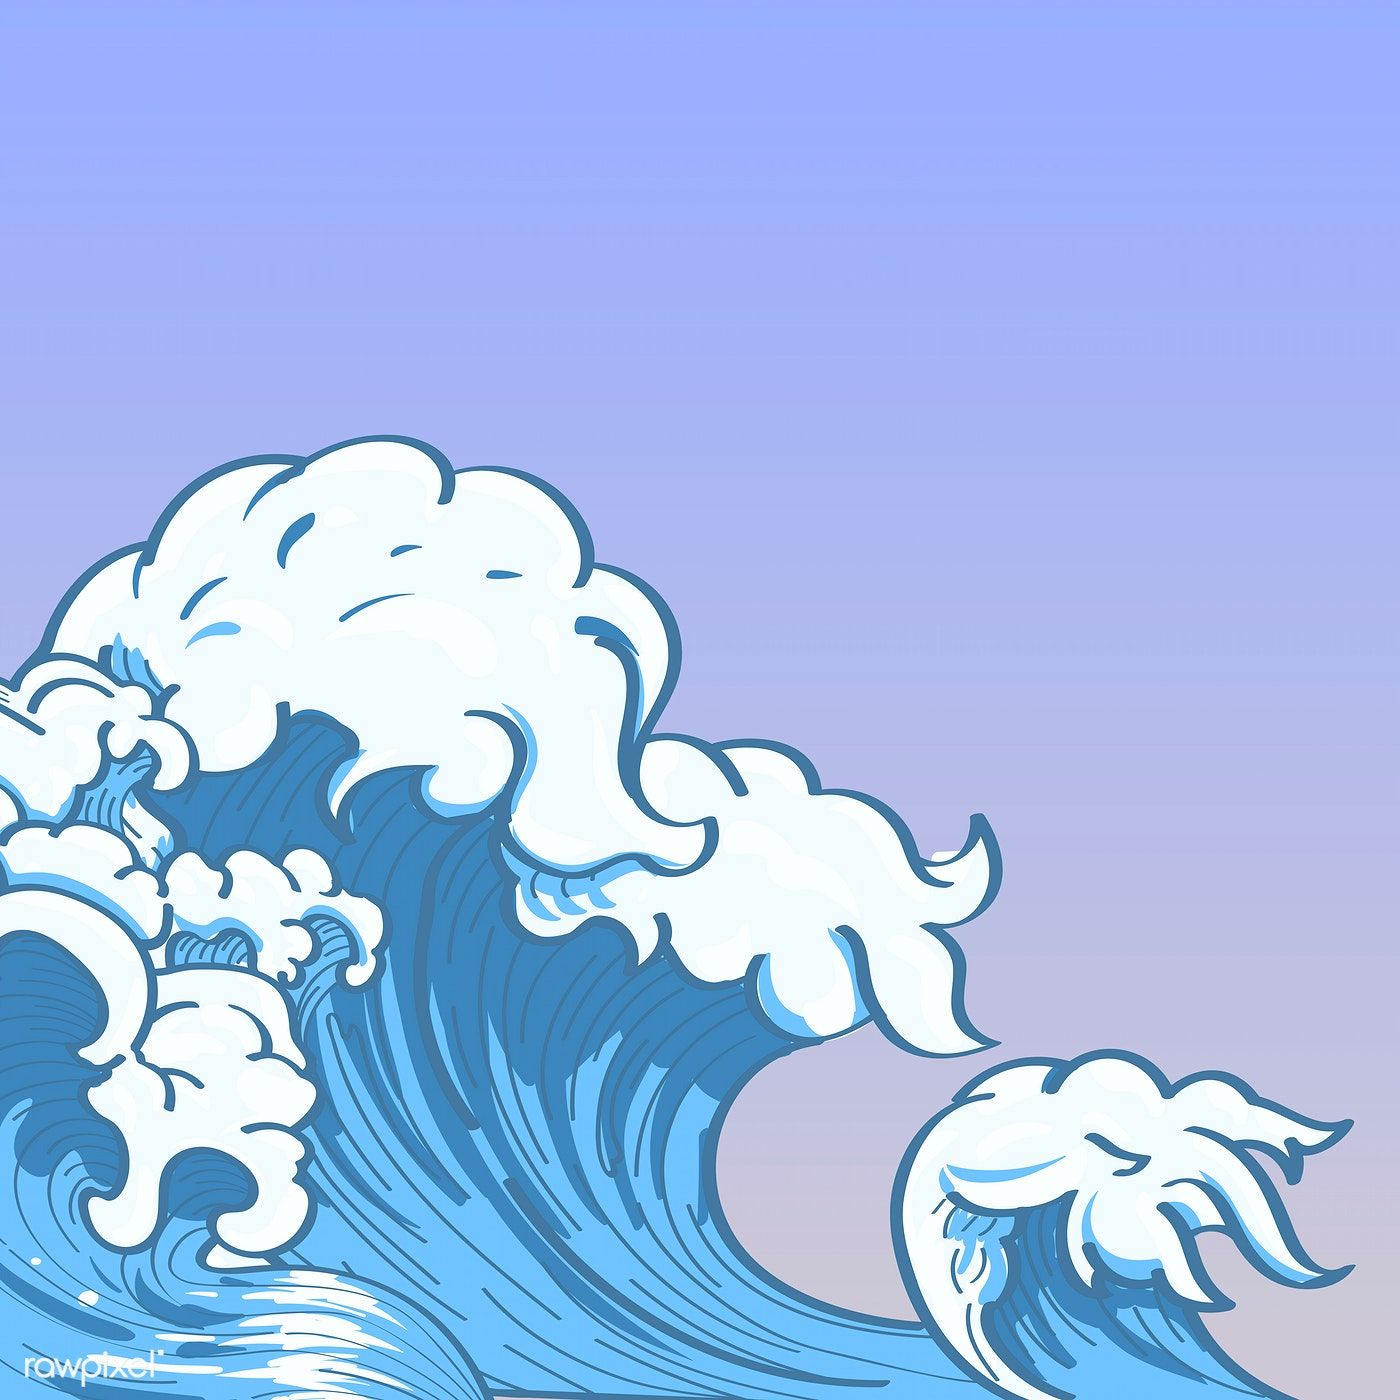 Blue Japanese wave background vector free image by